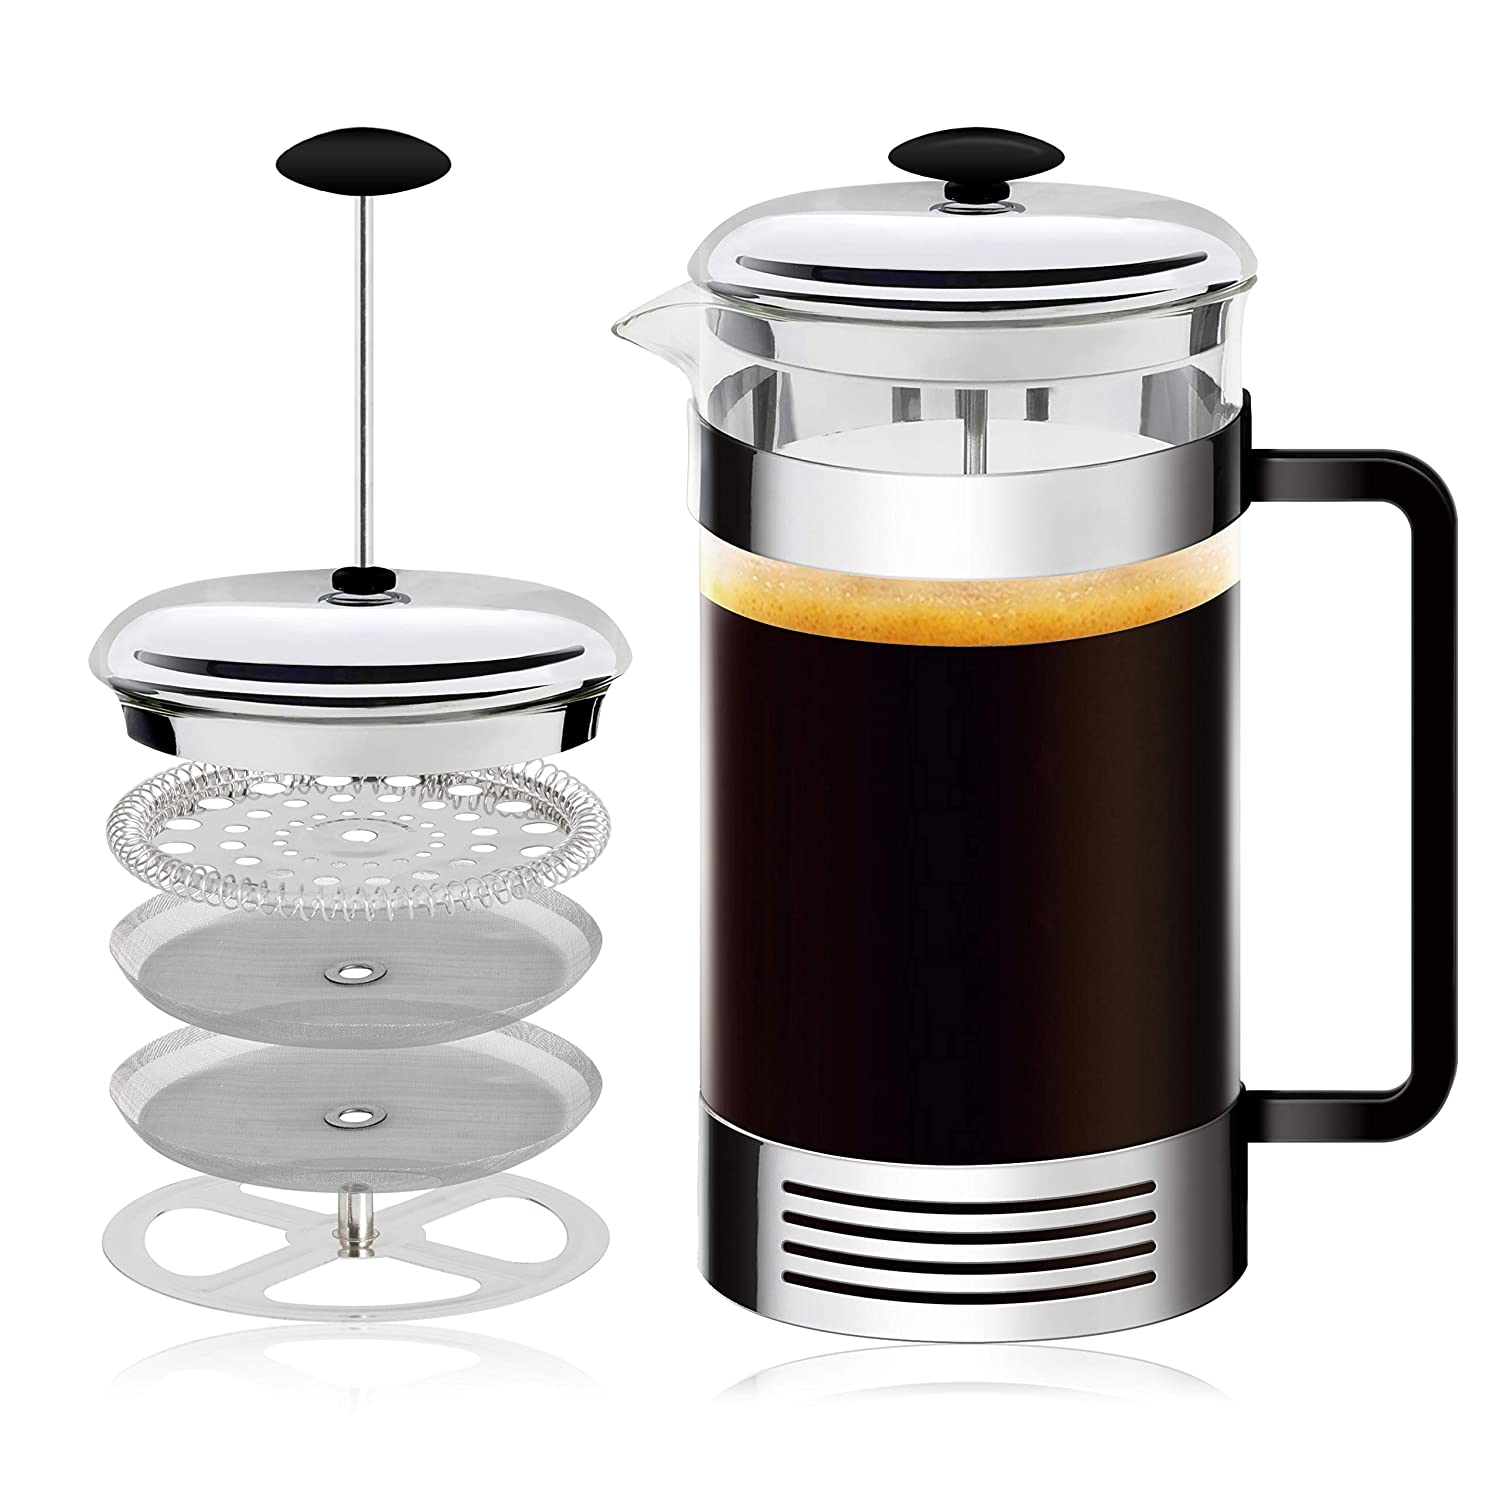 All-In-One French Press Coffee Maker Dual Function Coffee Press And Tea Maker High-Grade Stainless-Steel Single Cup or 32 OZ Multi-Cup Make Gourmet Coffee At Home With This French Coffee Press